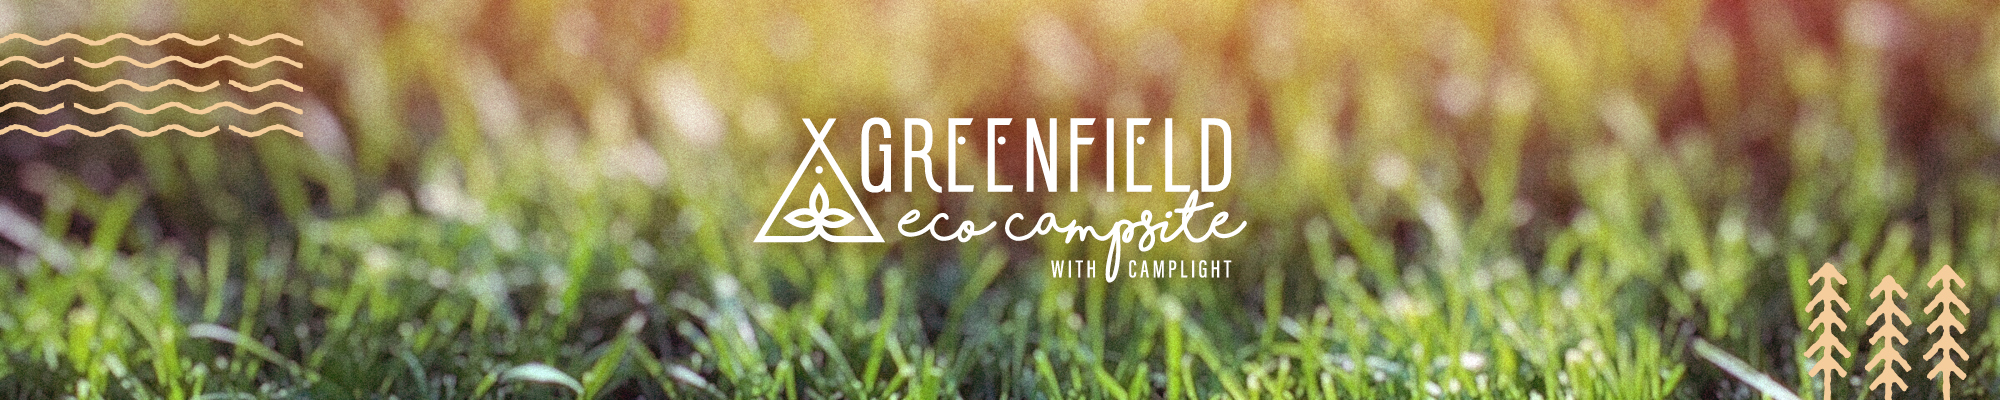 Greenfield Eco Campsite